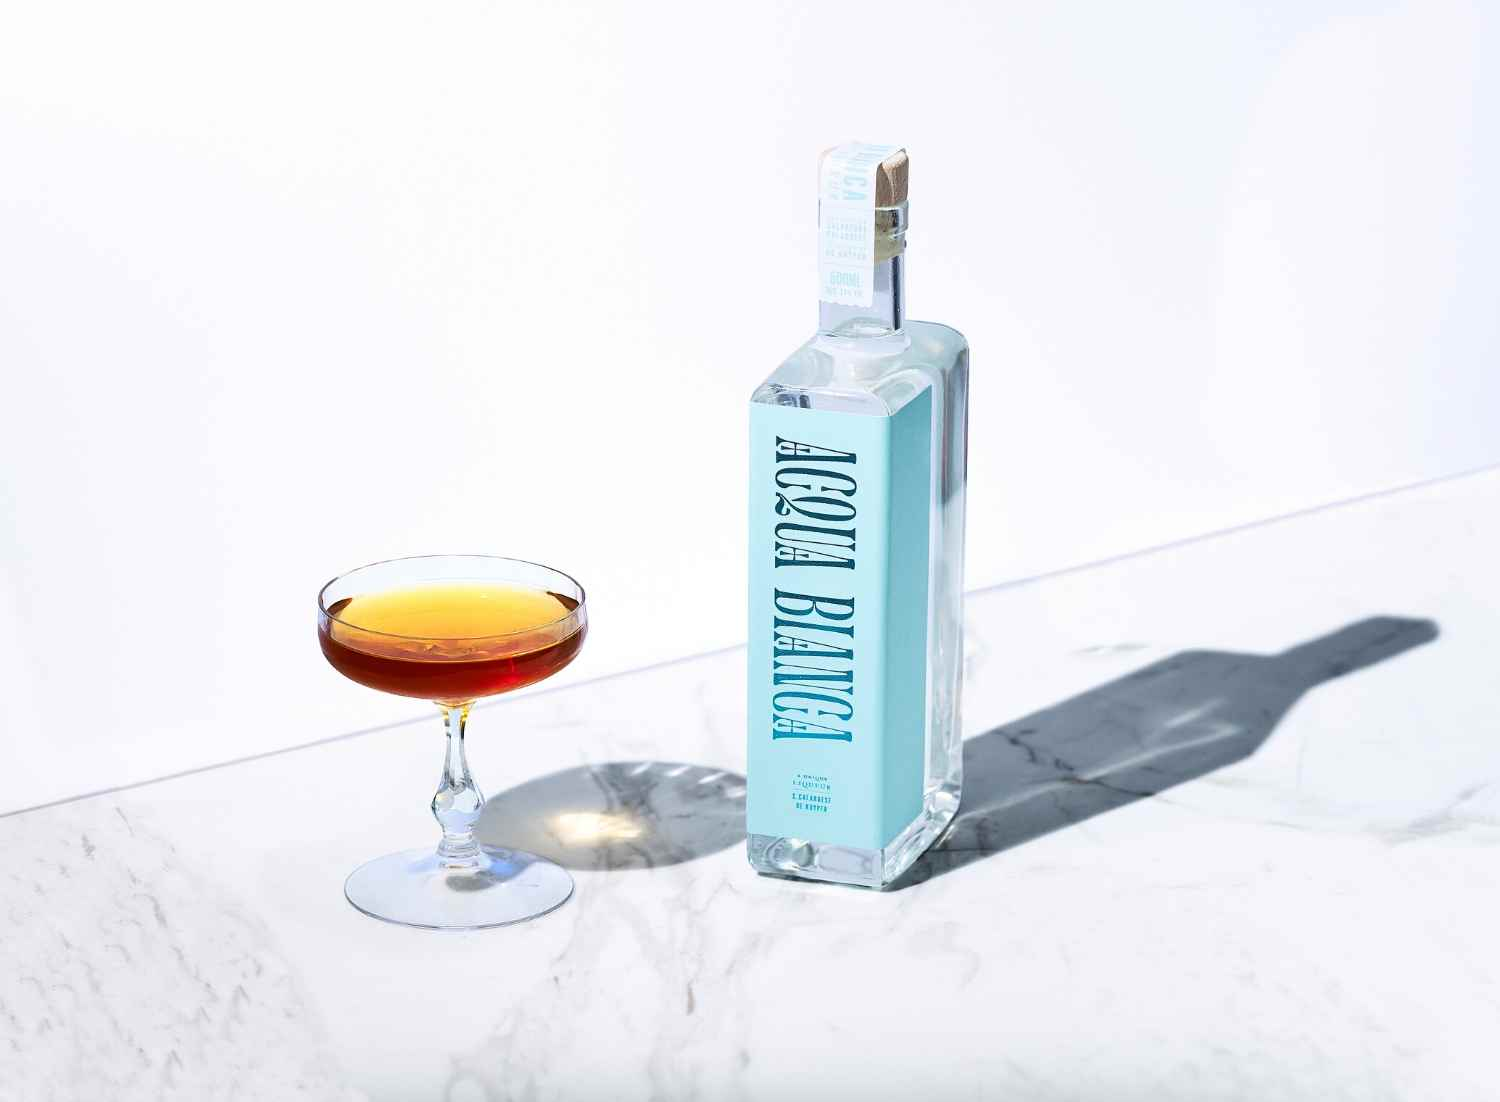 How to Make the Sal's Stinger with Acqua Bianca – Cocktail Recipe